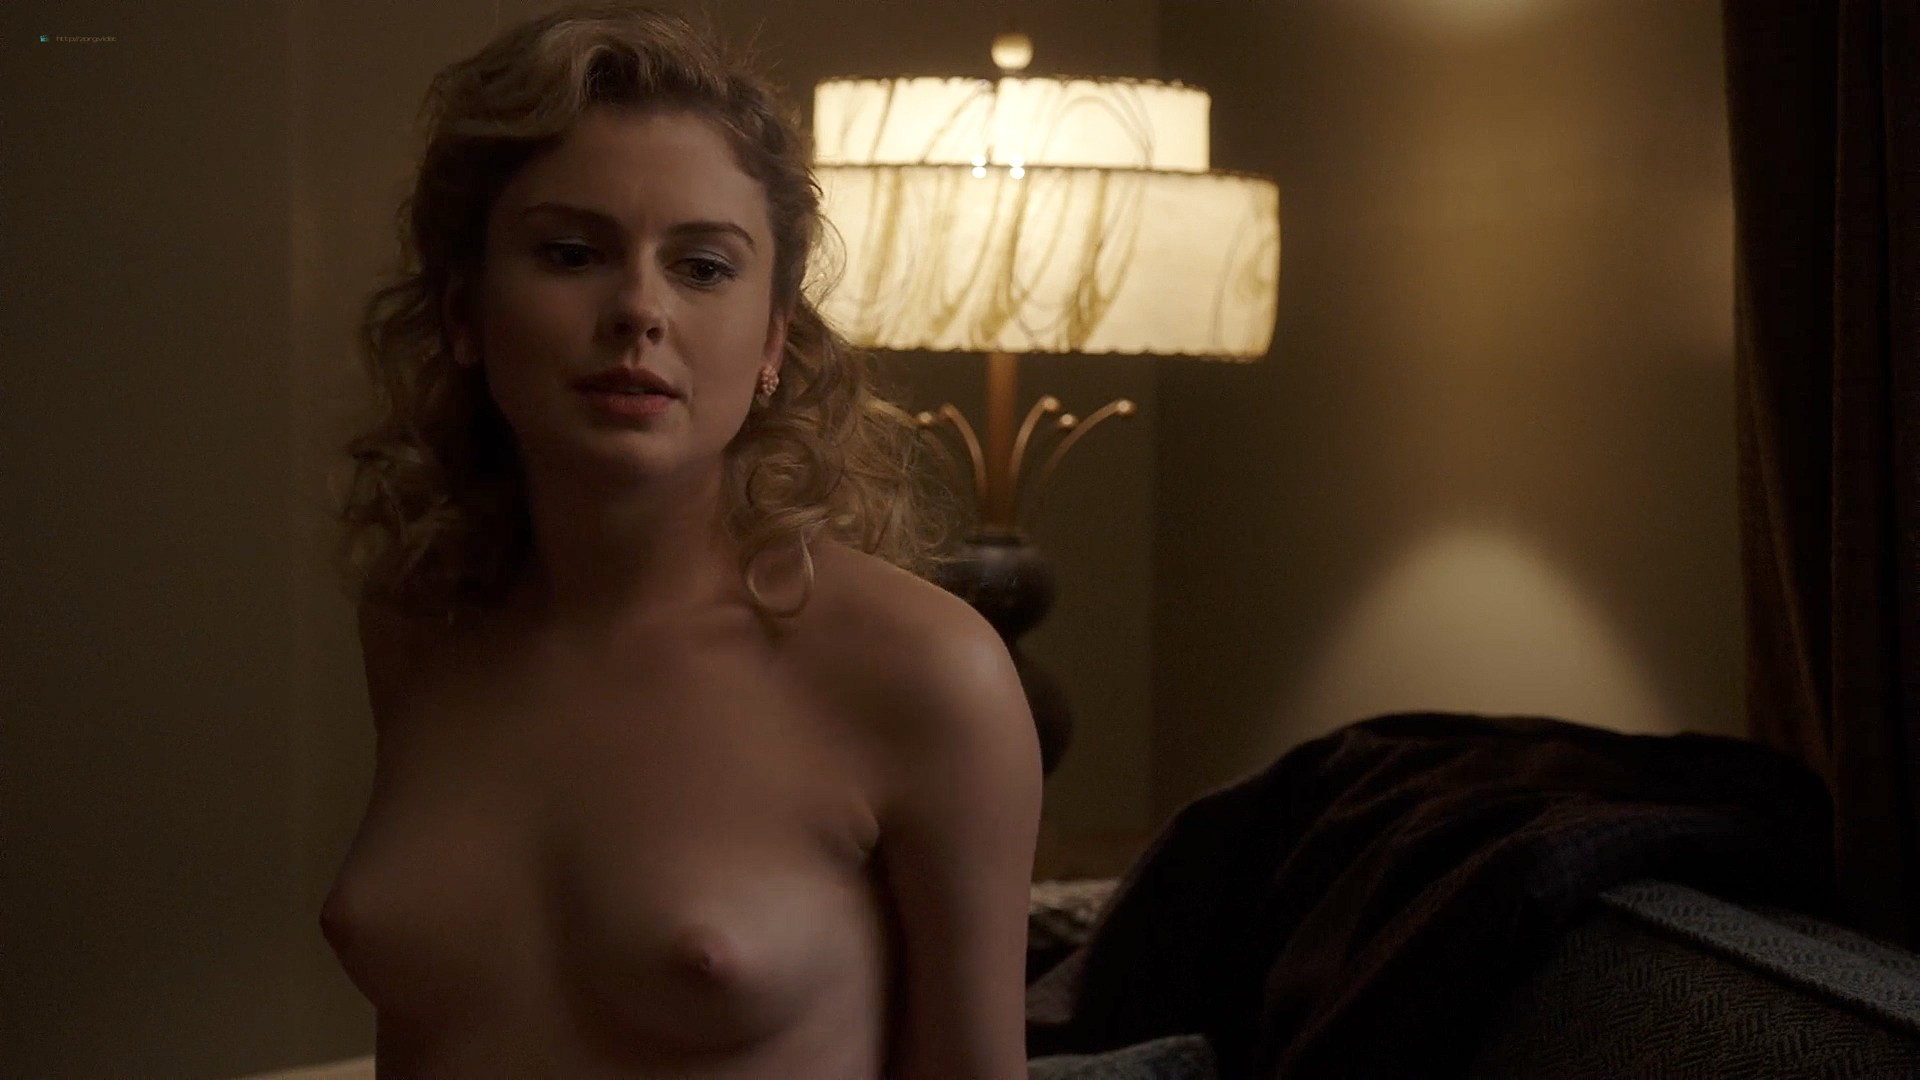 Lizzy Caplan nude topless Rose Mclever nude topless - Masters of Sex (2013) s1e4 HD 1080p (5)